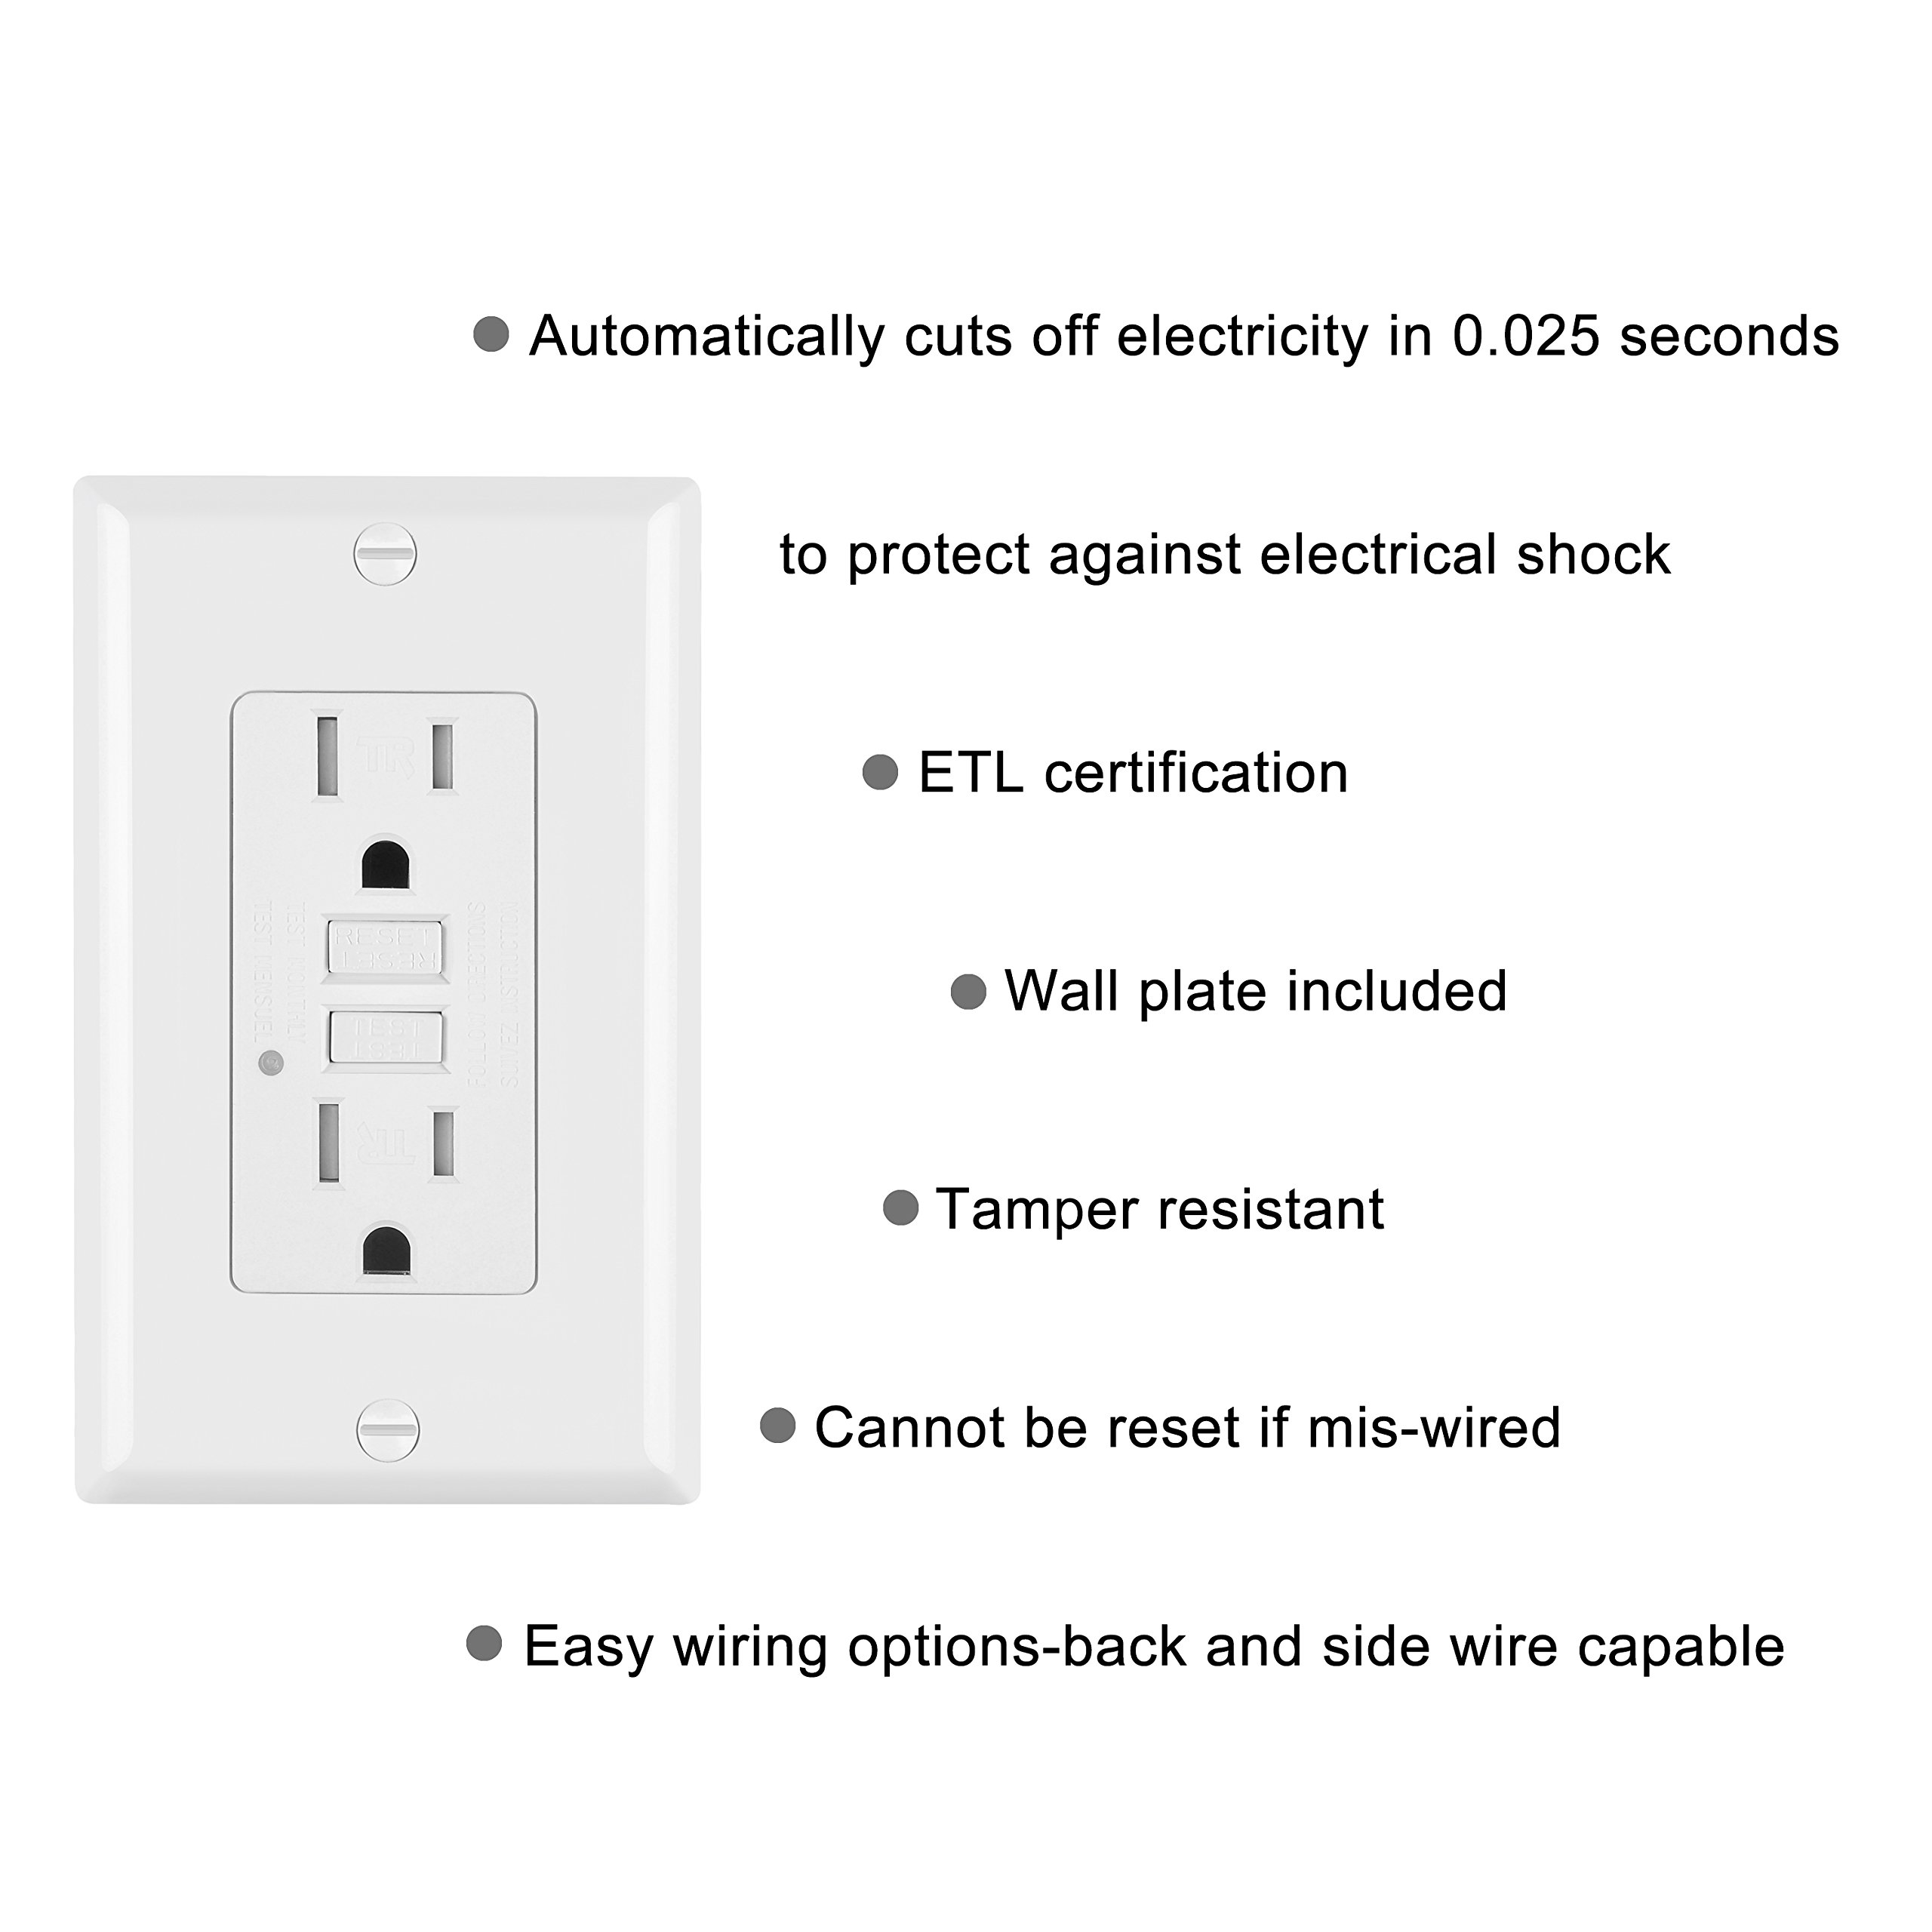 5 Pack - ELECTECK 15A/125V Tamper Resistant GFCI Outlets, Decor Receptacle with LED Indicator, Decorative Wall Plates and Screws Included, Residential and Commercial Grade, ETL Certified, White by ELECTECK (Image #2)